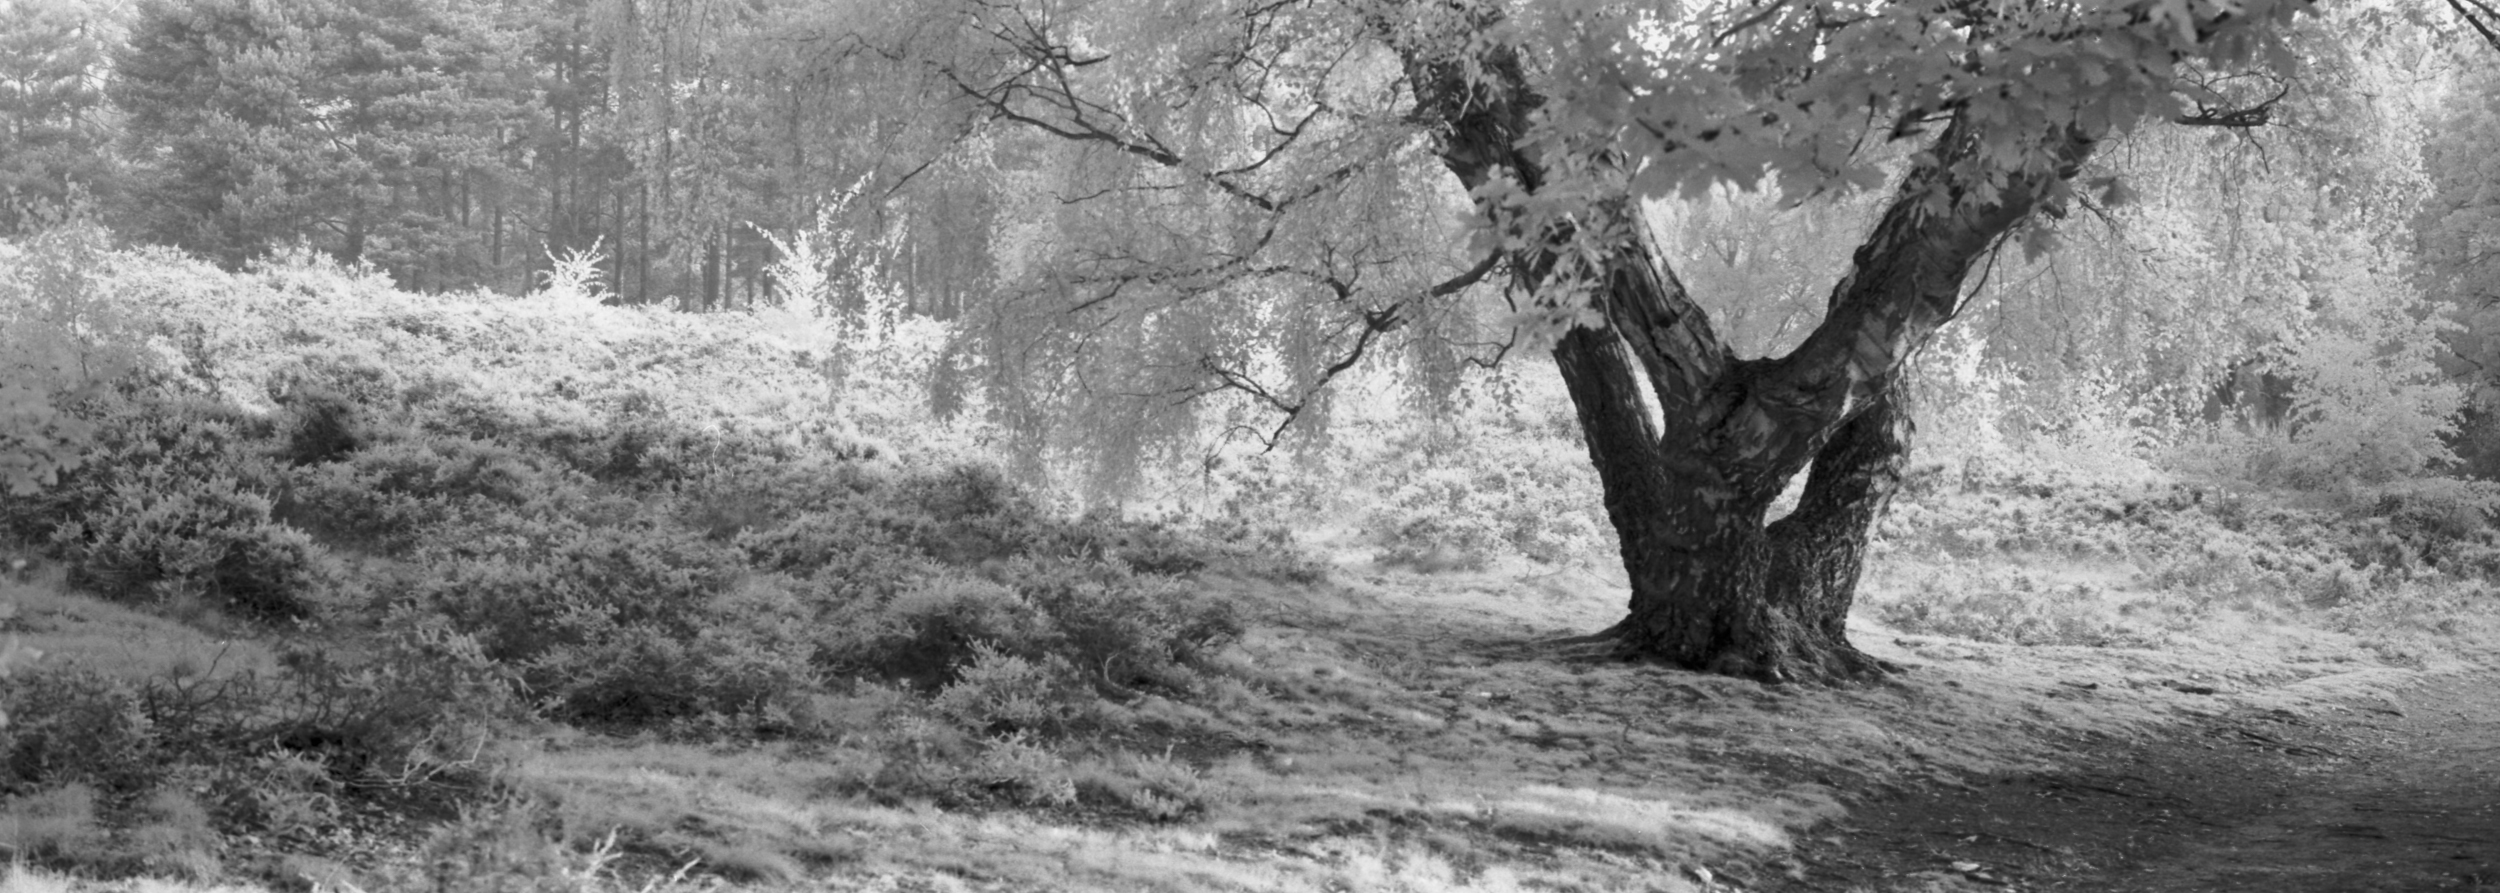 Ampthill Heath - XPan and Rollei Superpan 200 with IR Filter